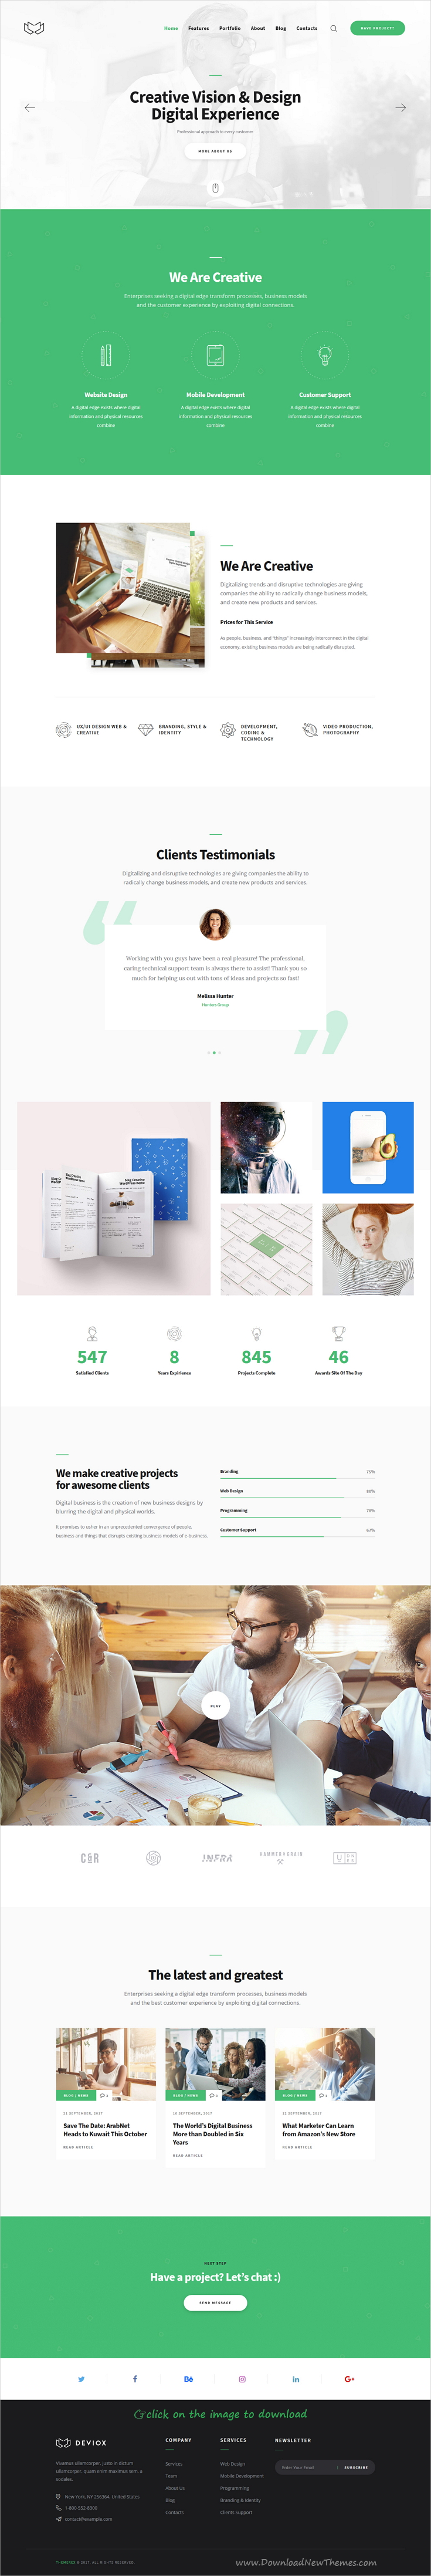 Deviox is clean and modern design 3in1 responsive WordPress theme